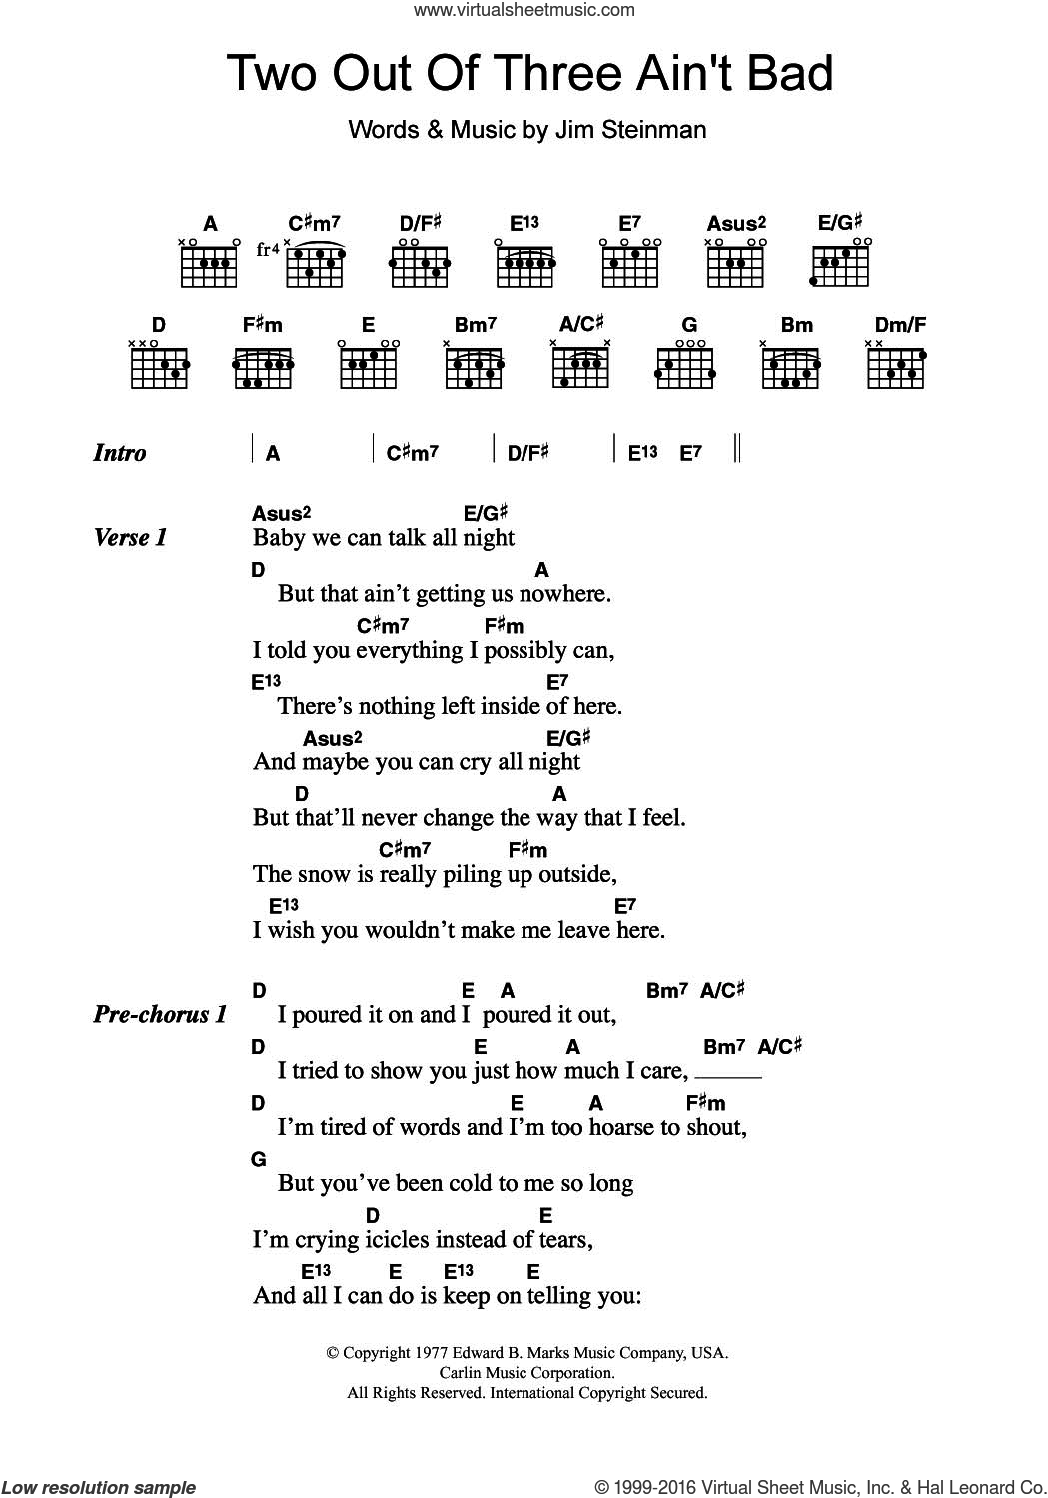 Two Out Of Three Ain't Bad sheet music for guitar (chords) by Meat Loaf and Jim Steinman, intermediate skill level